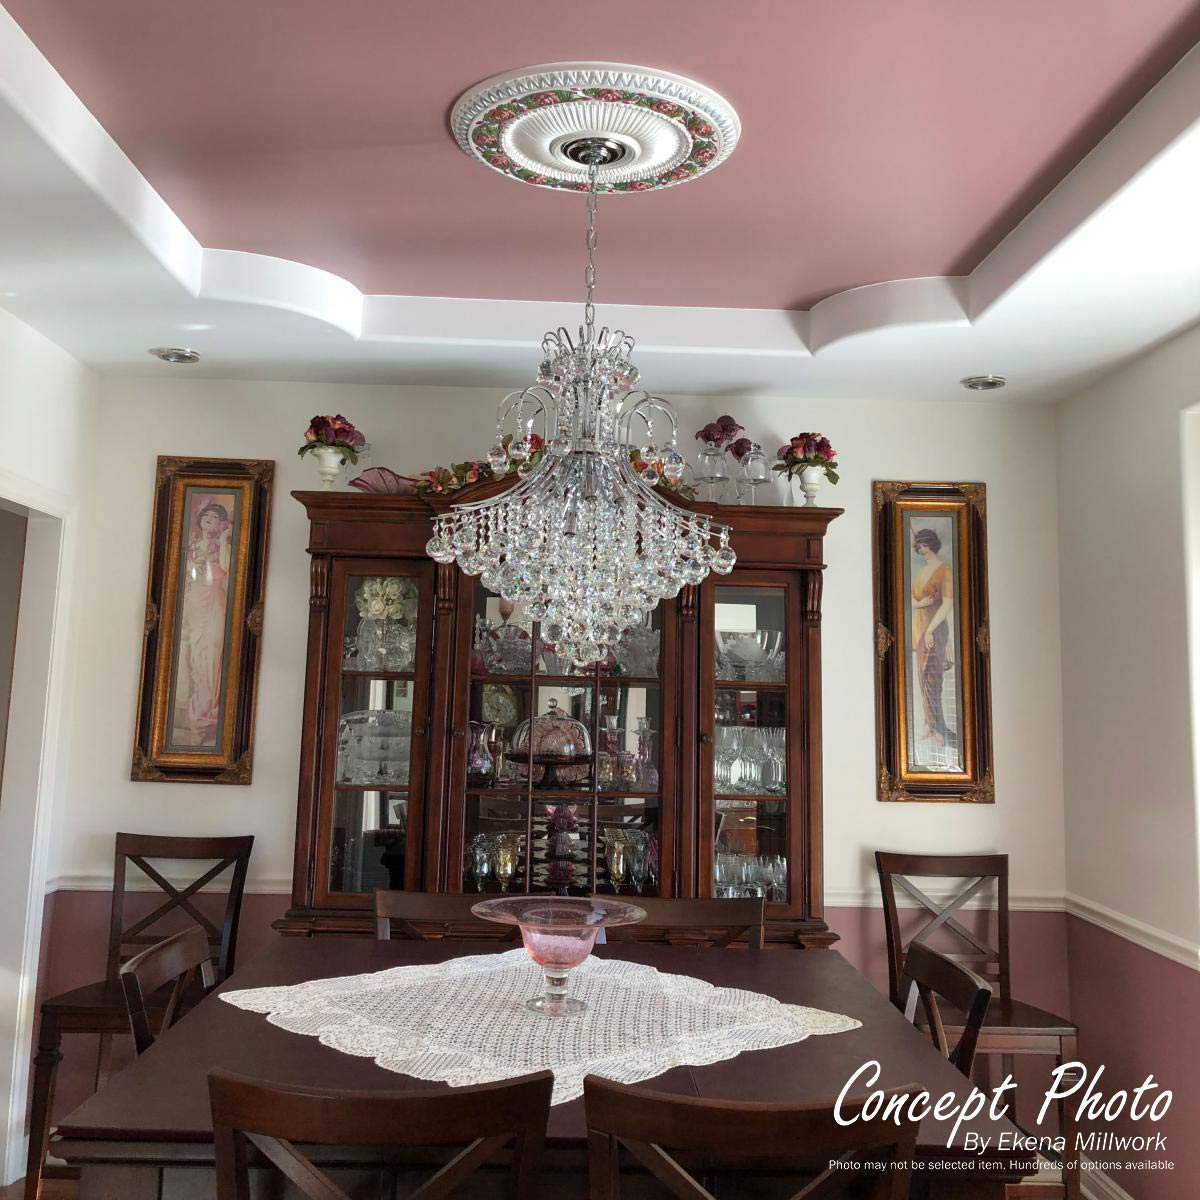 Two Piece Factory Primed White Fits Canopies up to 3 5//8 Ekena Millwork CM26LF2 26 3//4 OD ID x 1 1//8 P Leaf Ceiling Medallion